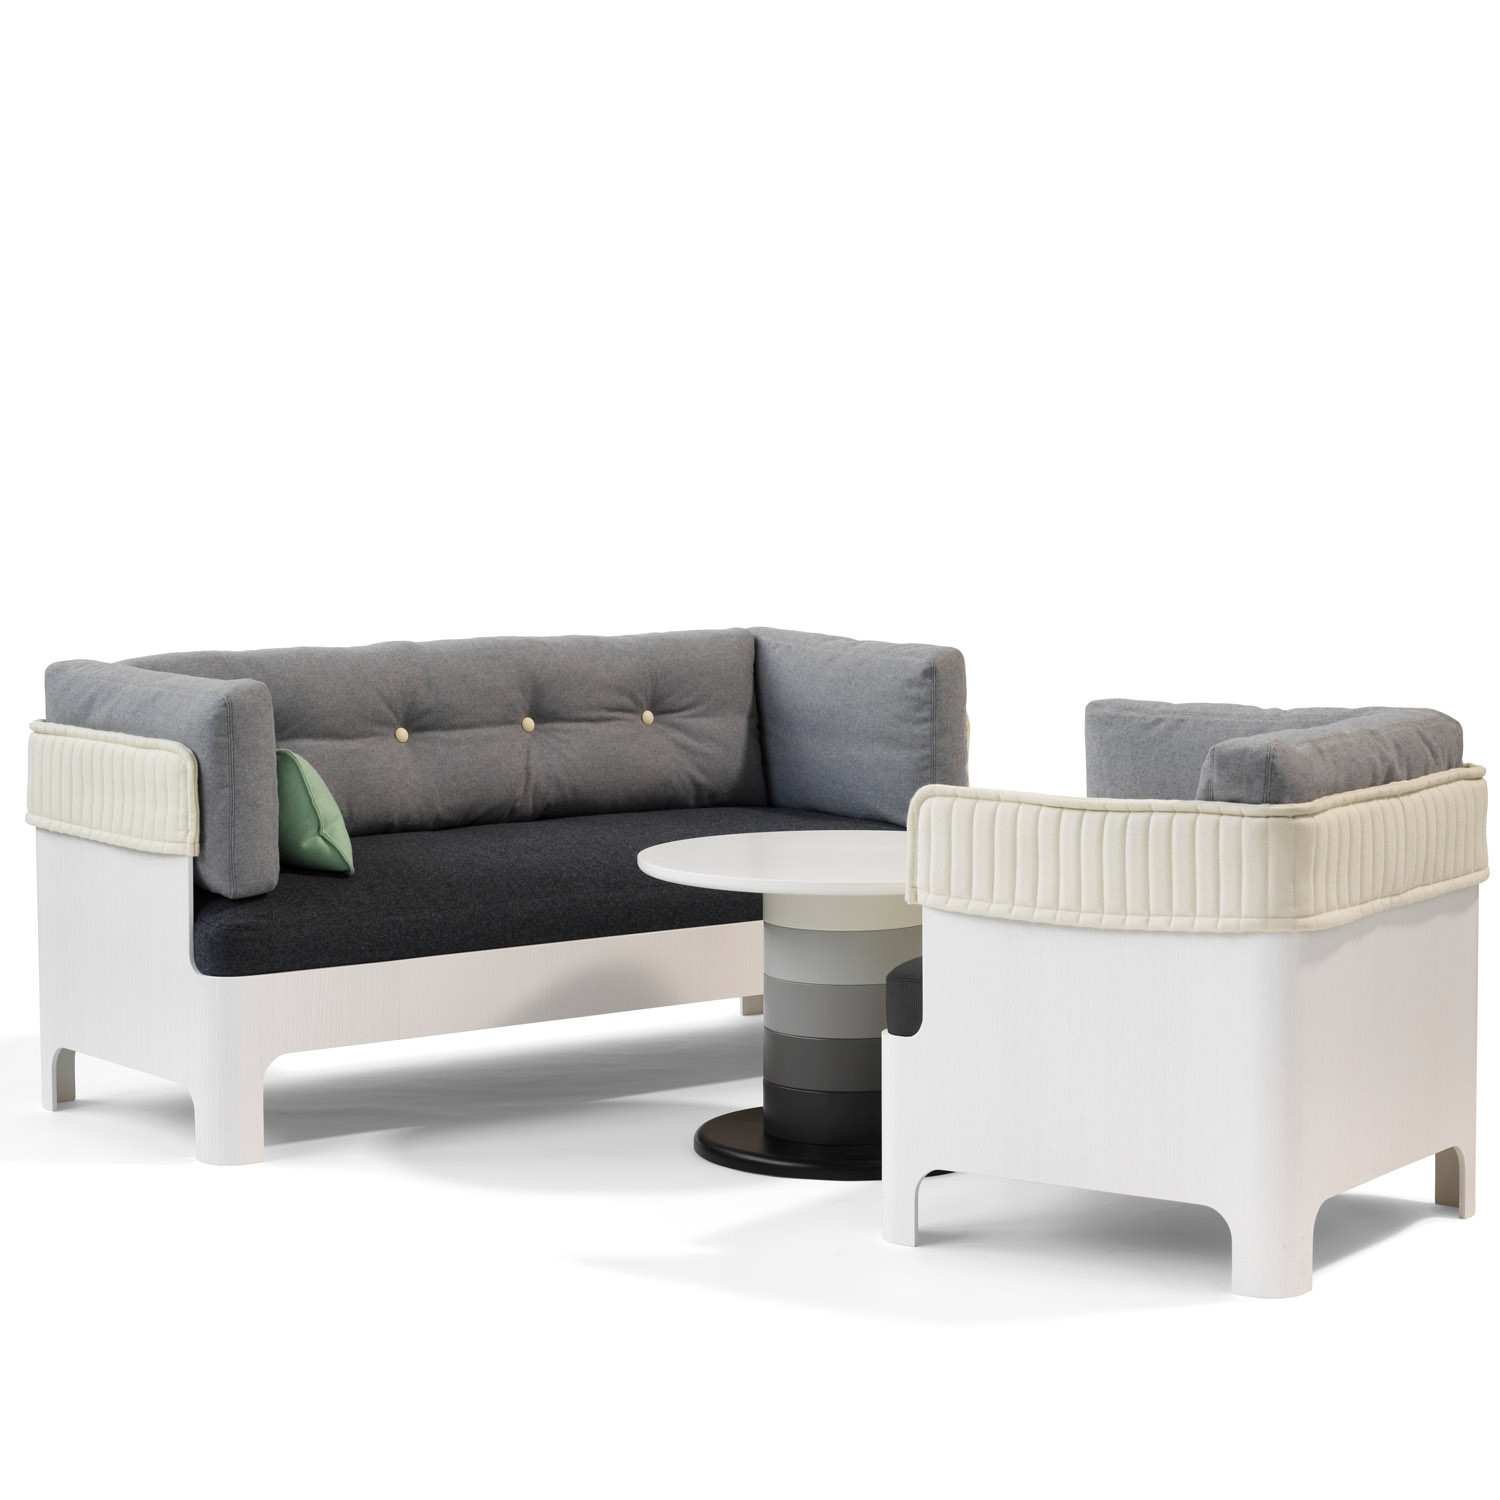 Koja Sofa S52L by Bla Station